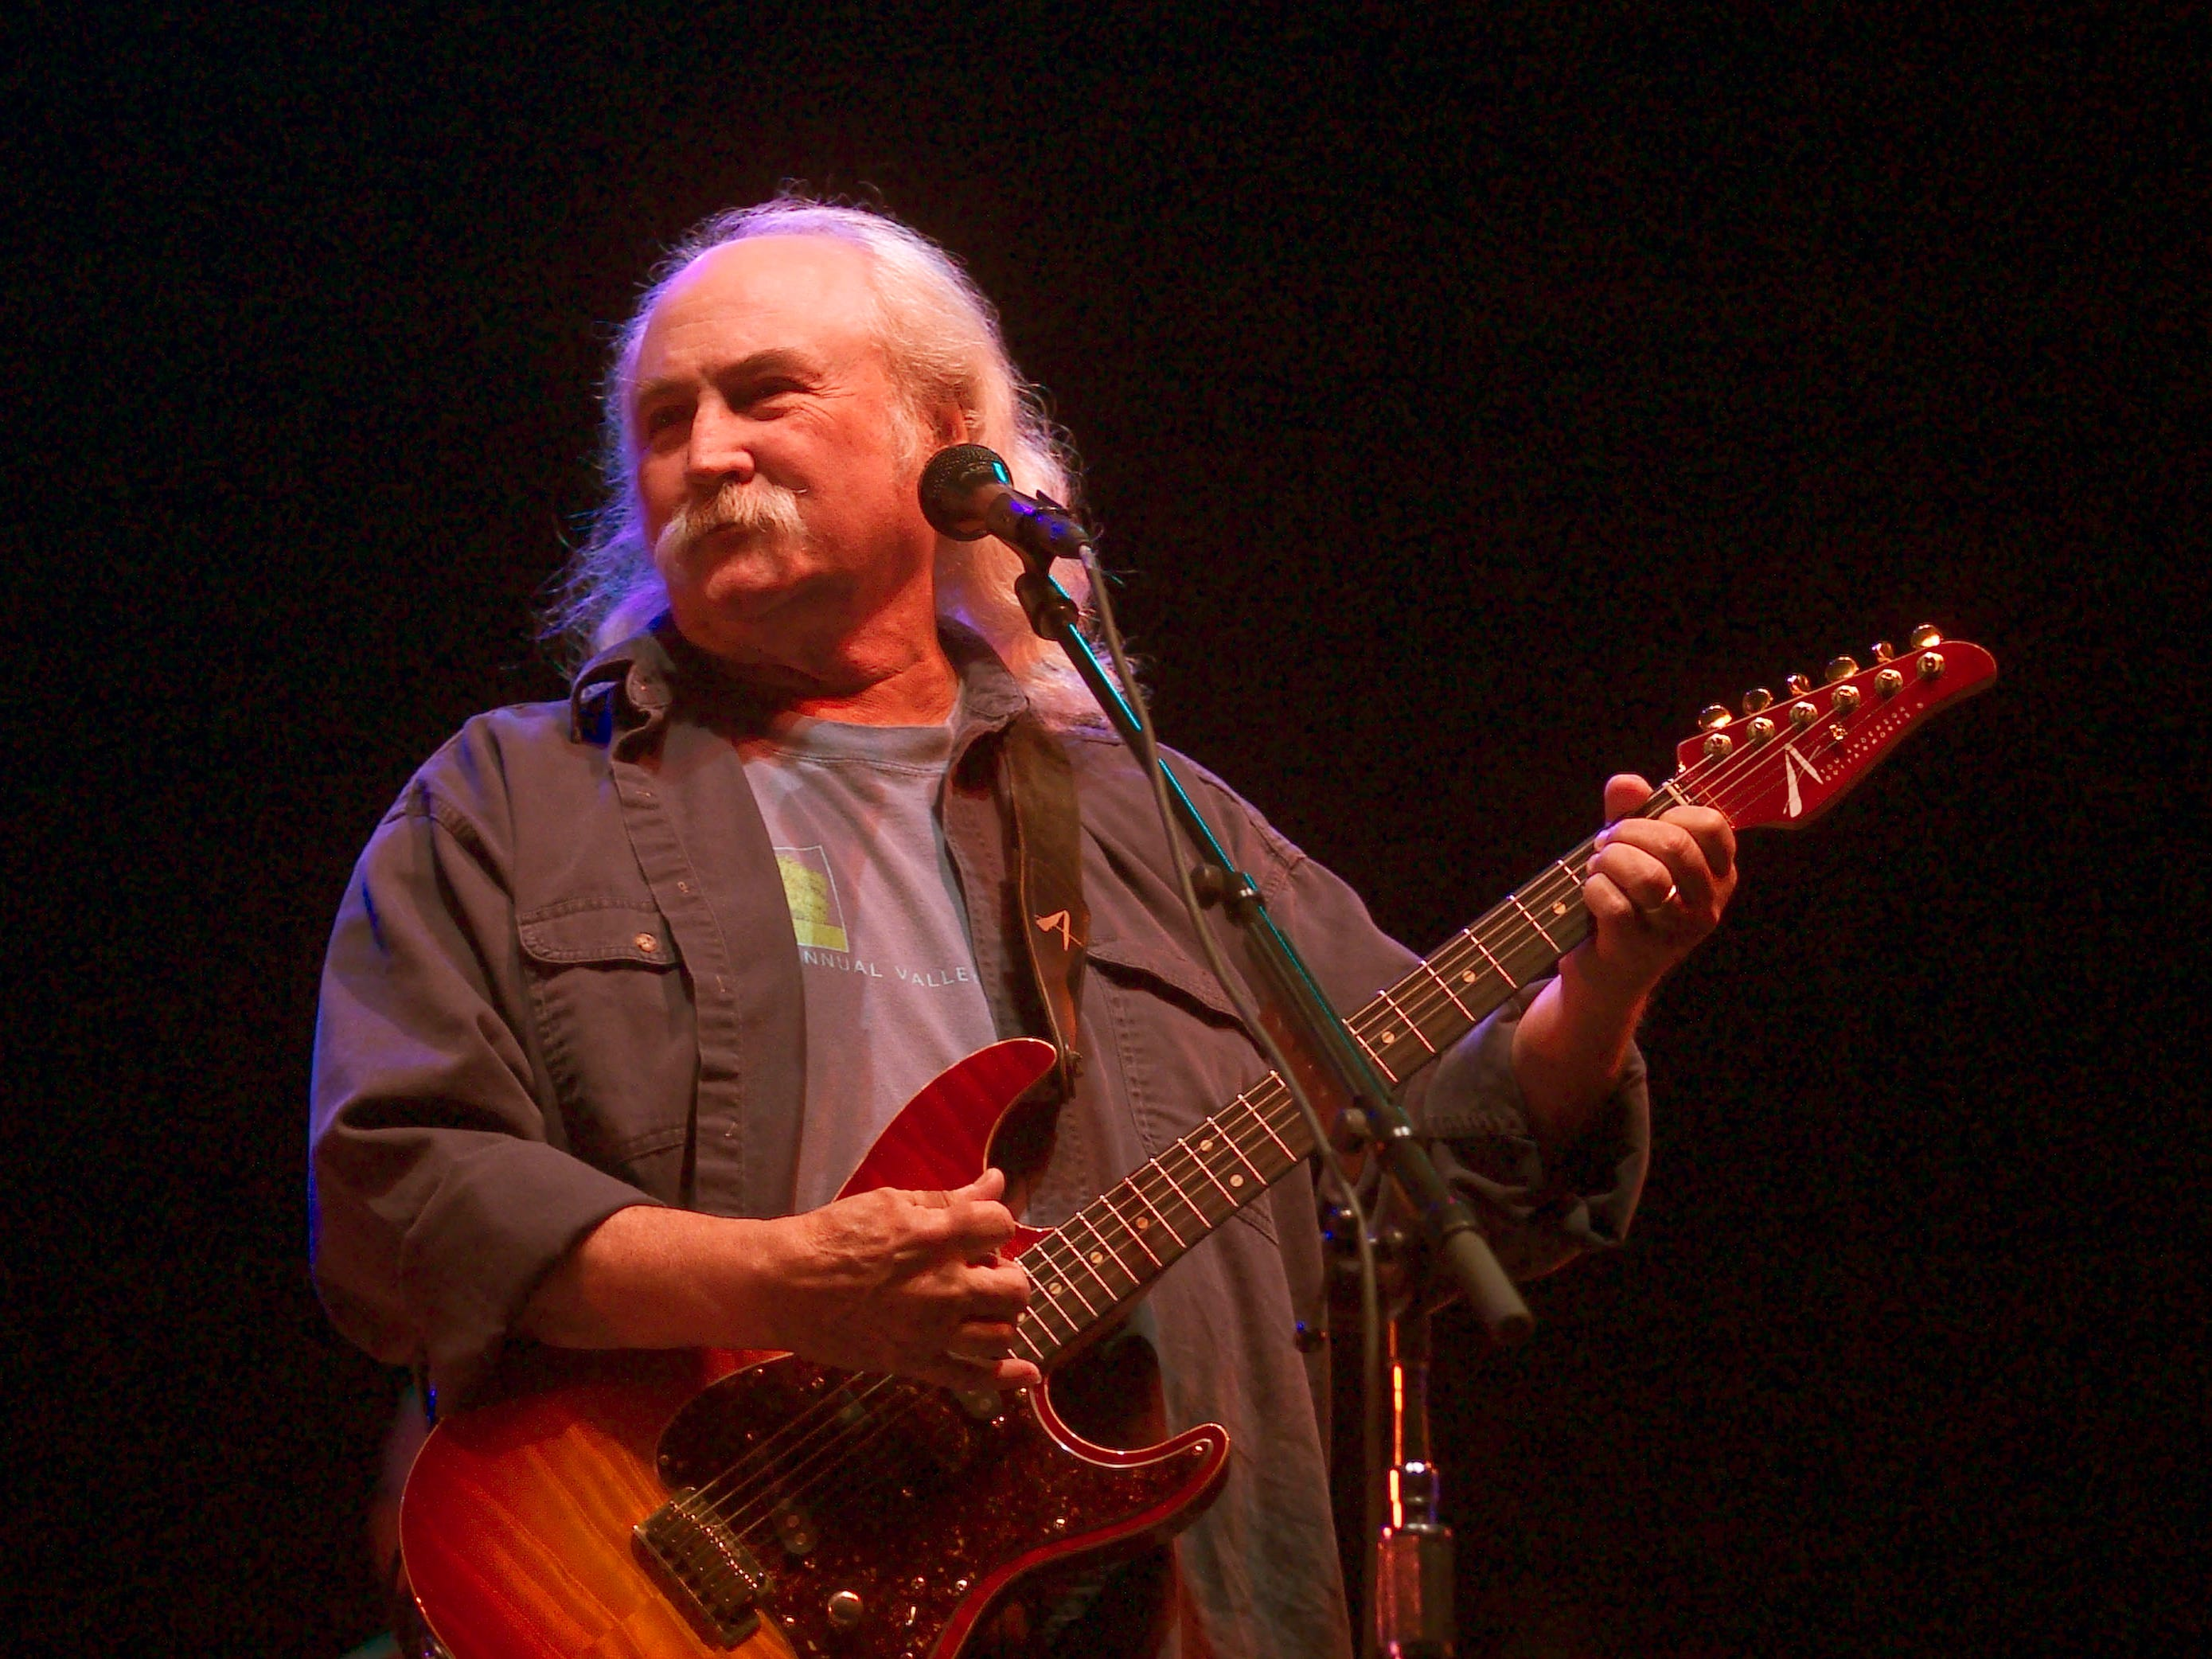 David Crosby of Crosby, Stills and Nash performs May 3, 2003 during the Music Midtown concert in Atlanta.